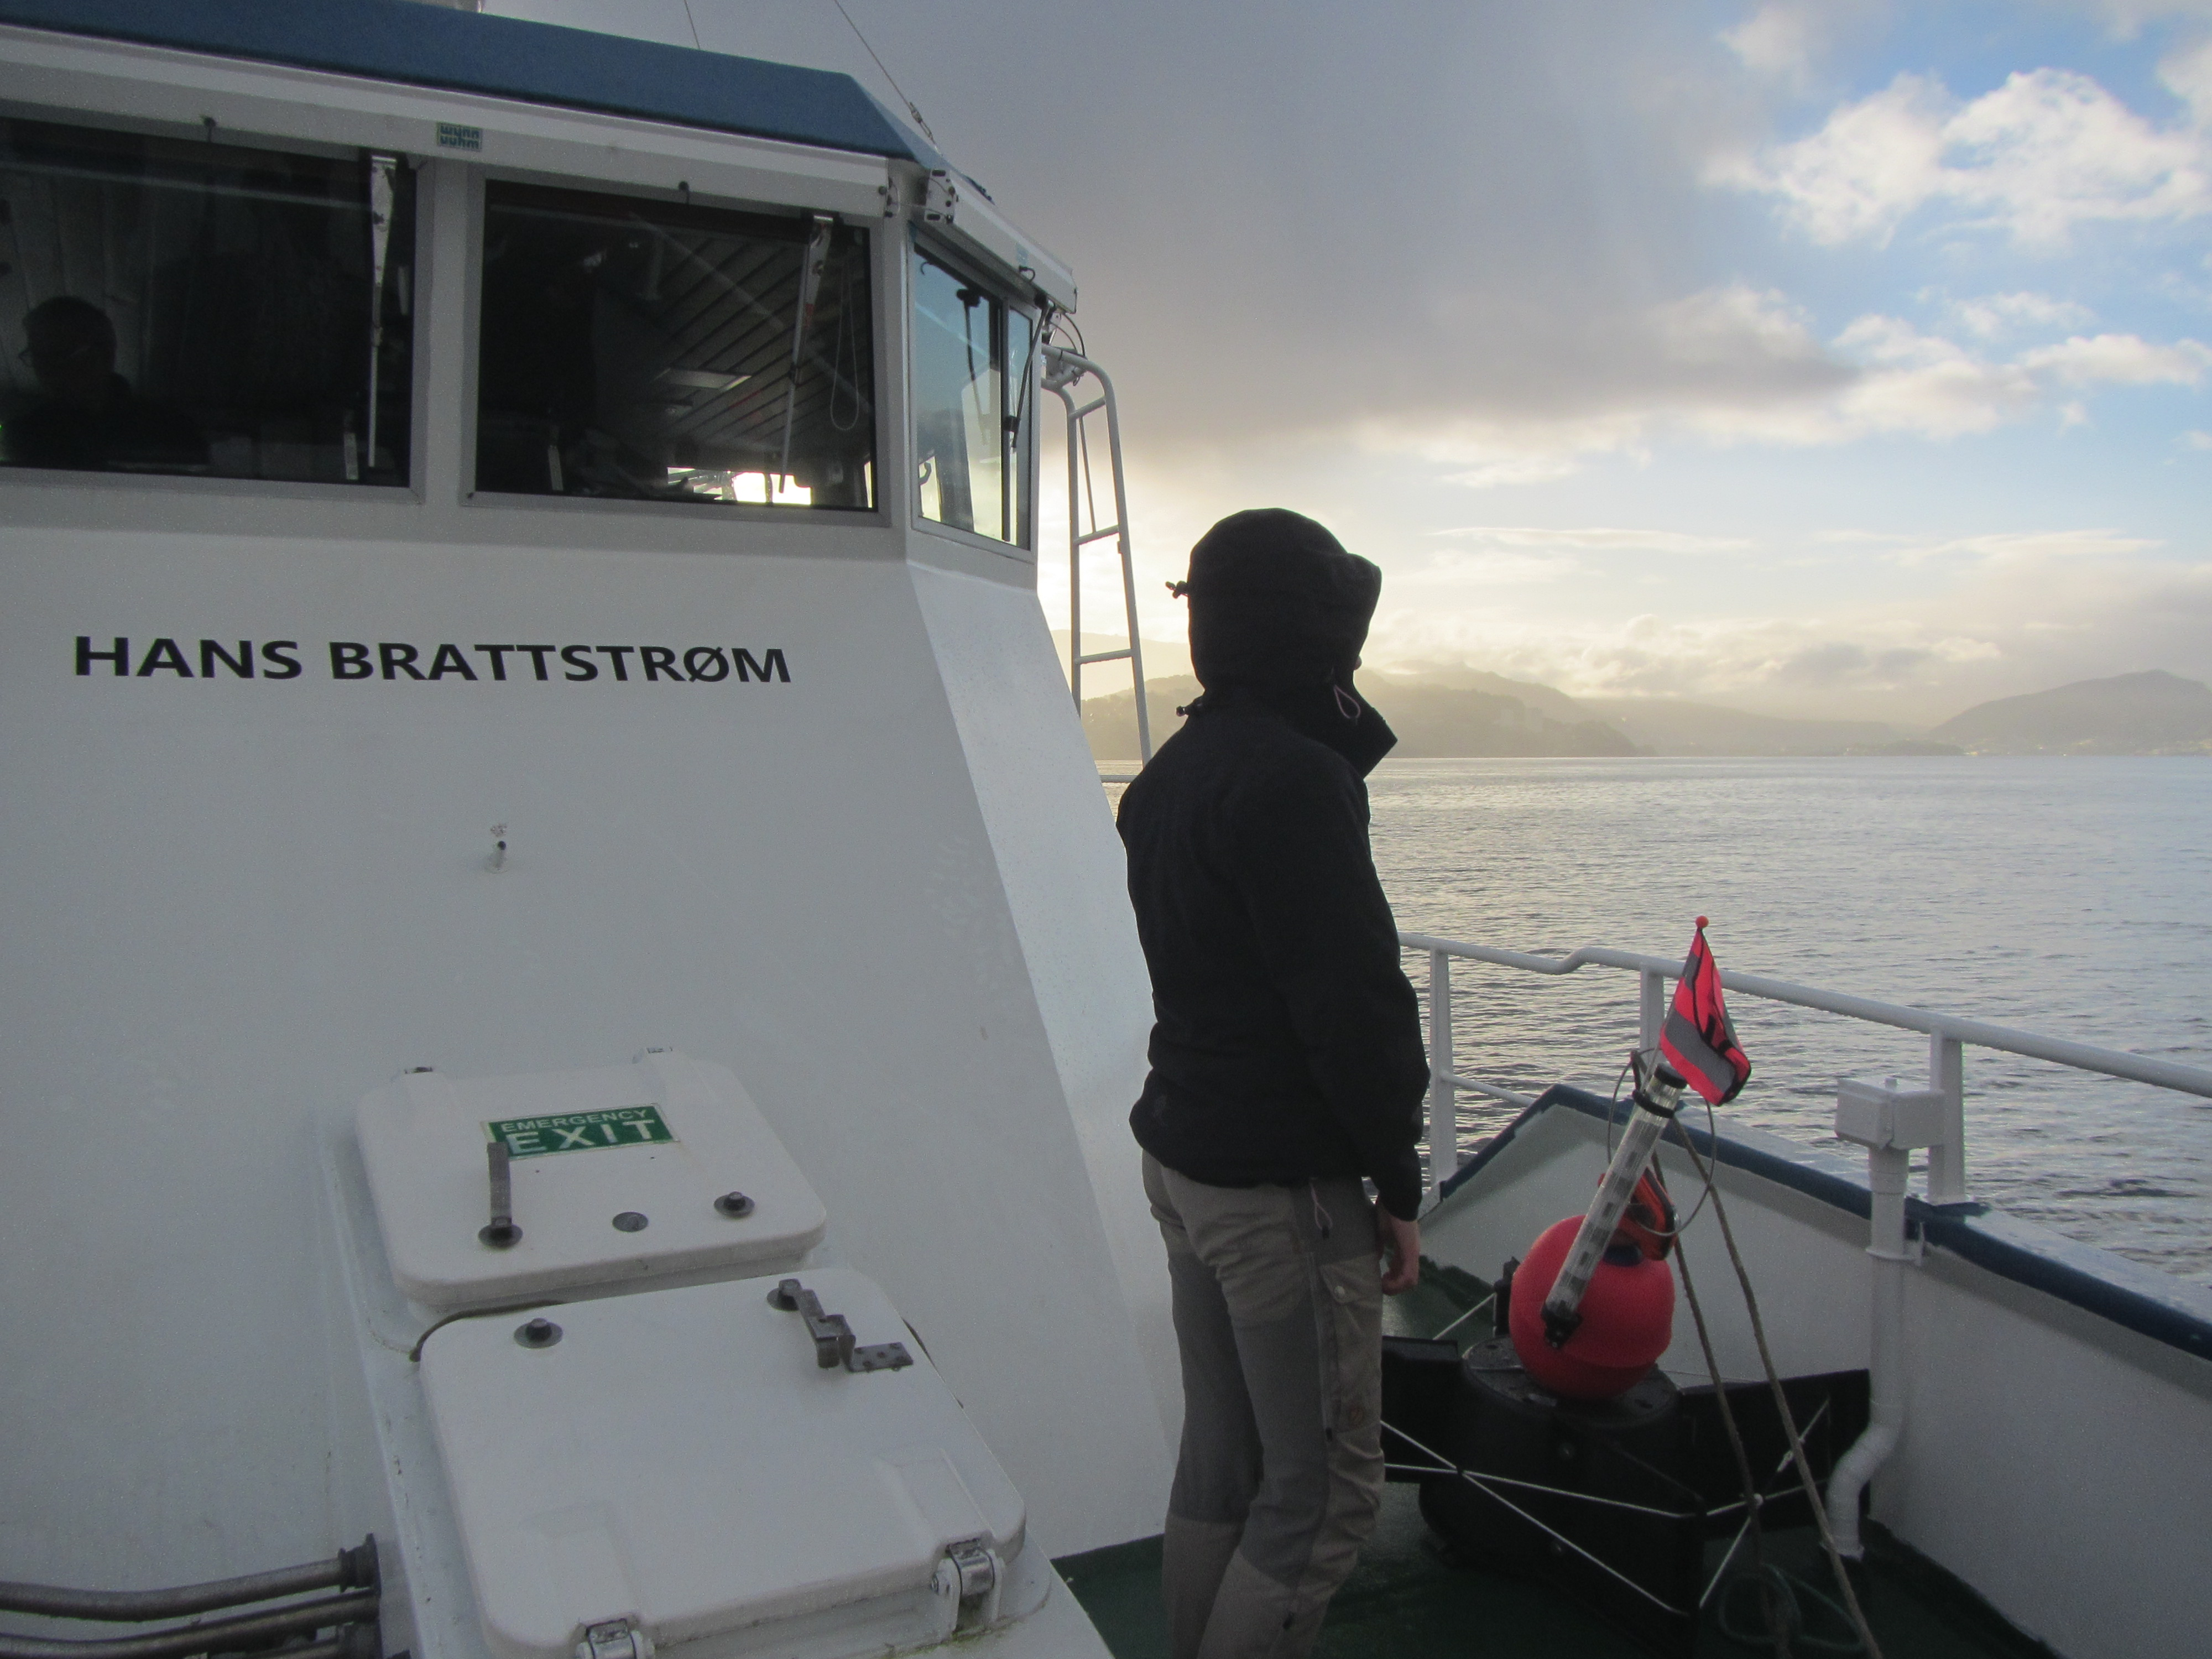 We are sailing on RV Hans Brattstrøm